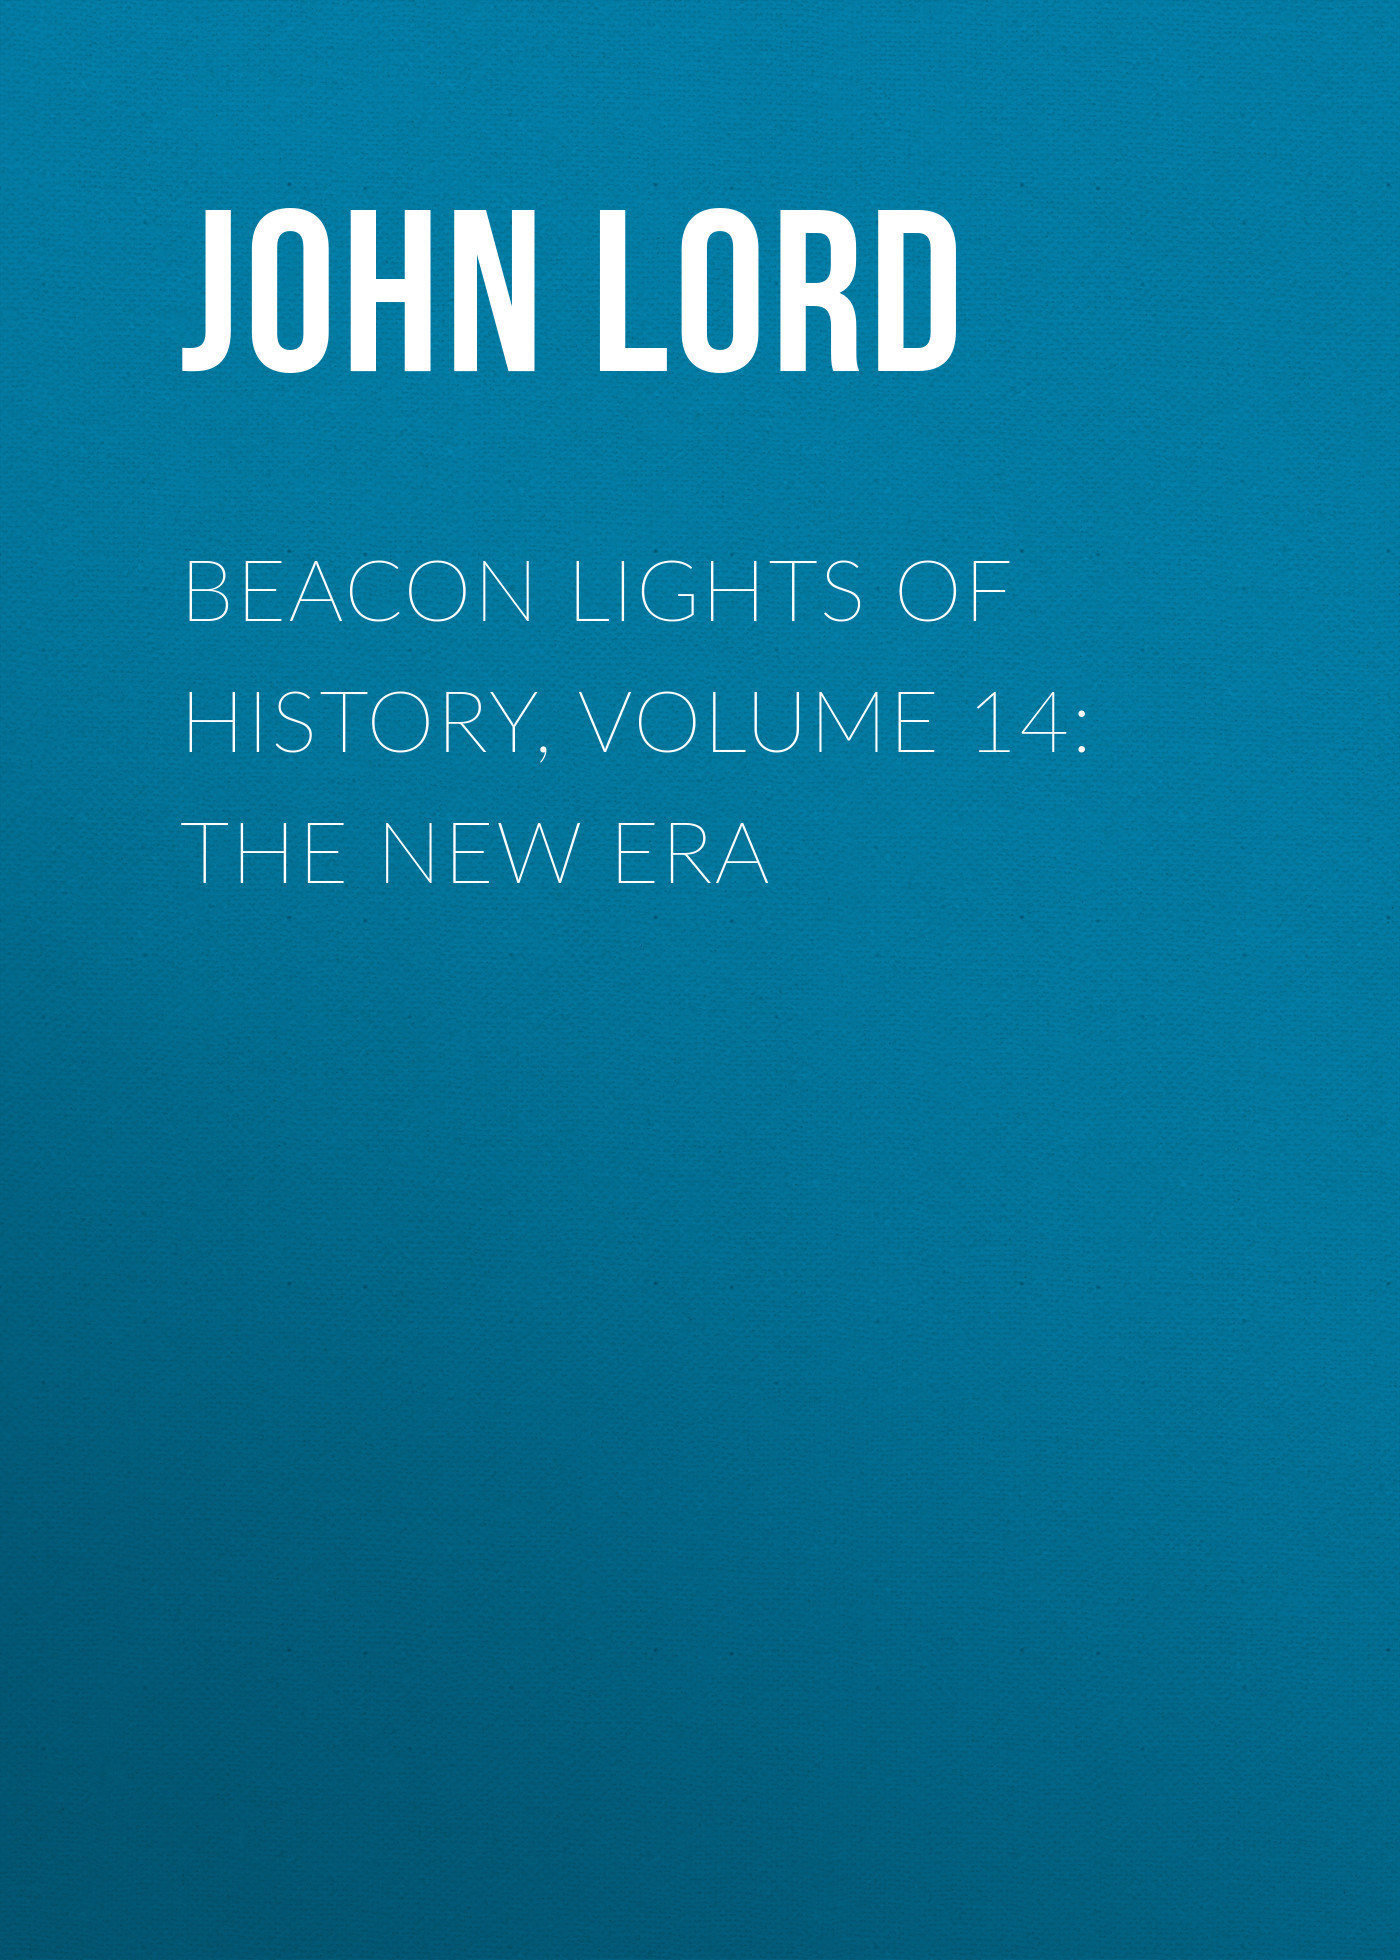 John Lord Beacon Lights of History, Volume 14: The New Era кольца nina ricci nr 702030201080 page 6